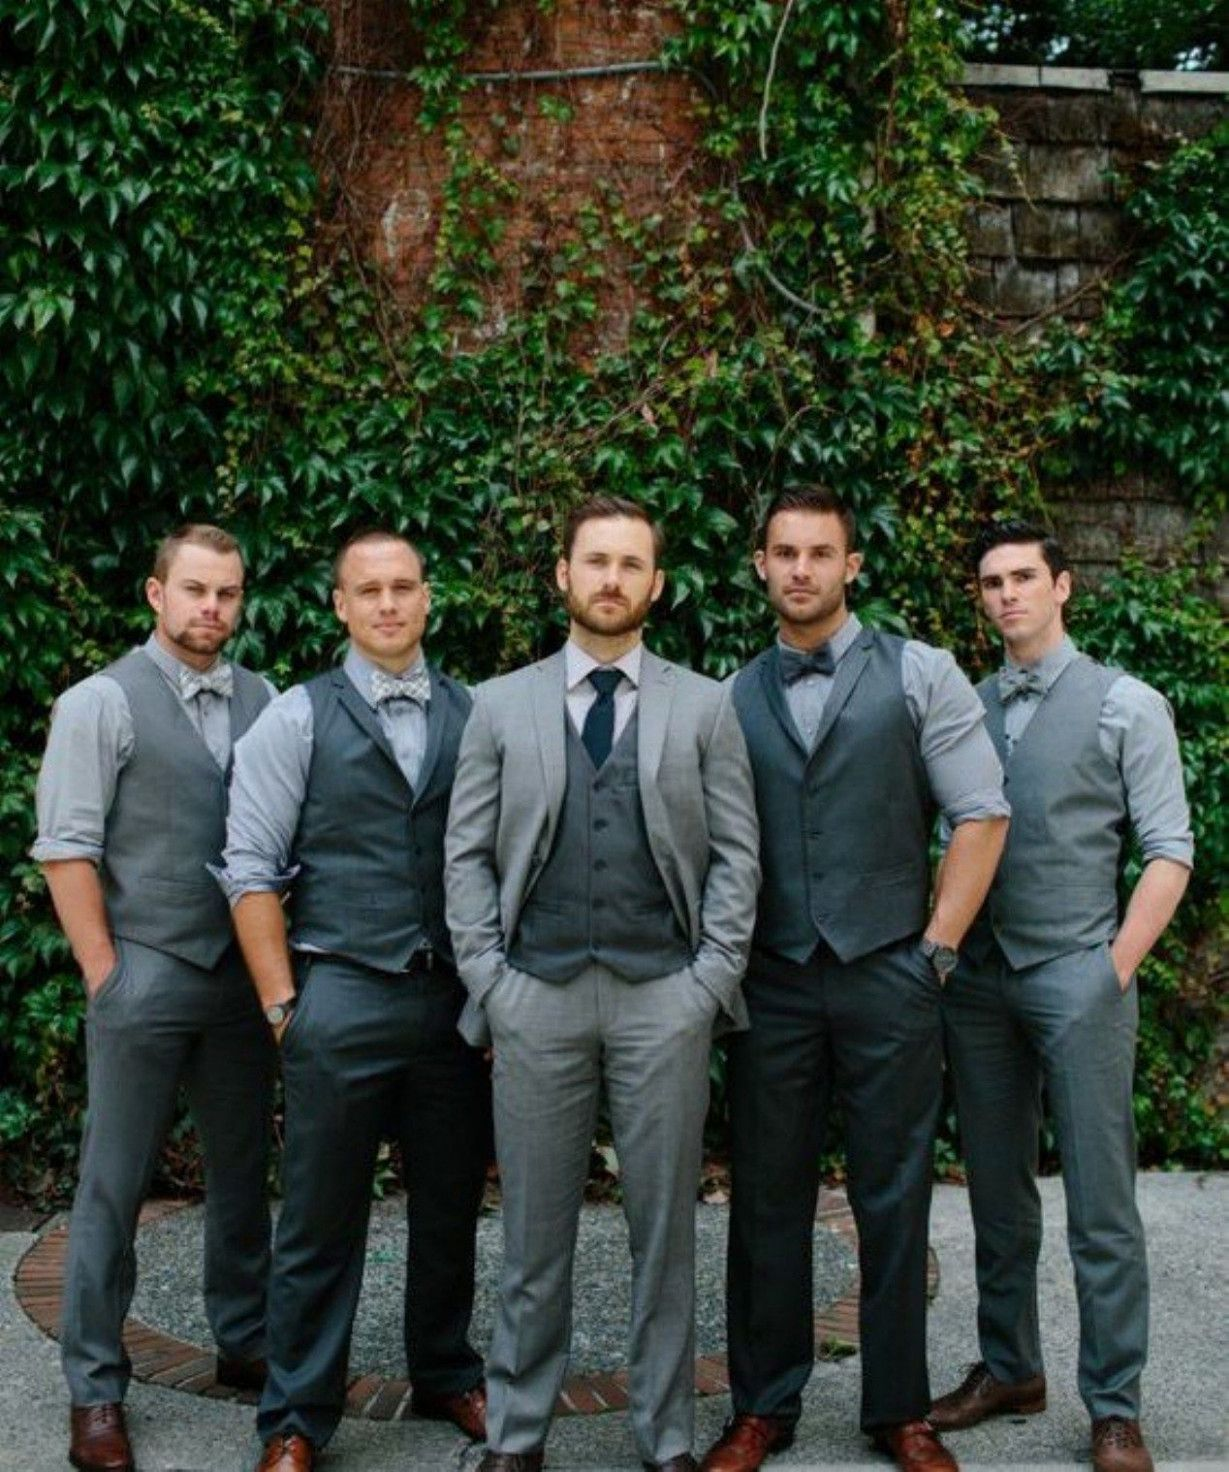 Rustic Wedding Attire For Groom Groomsmen Grey Wedding Groomsmen Mismatched Groomsmen